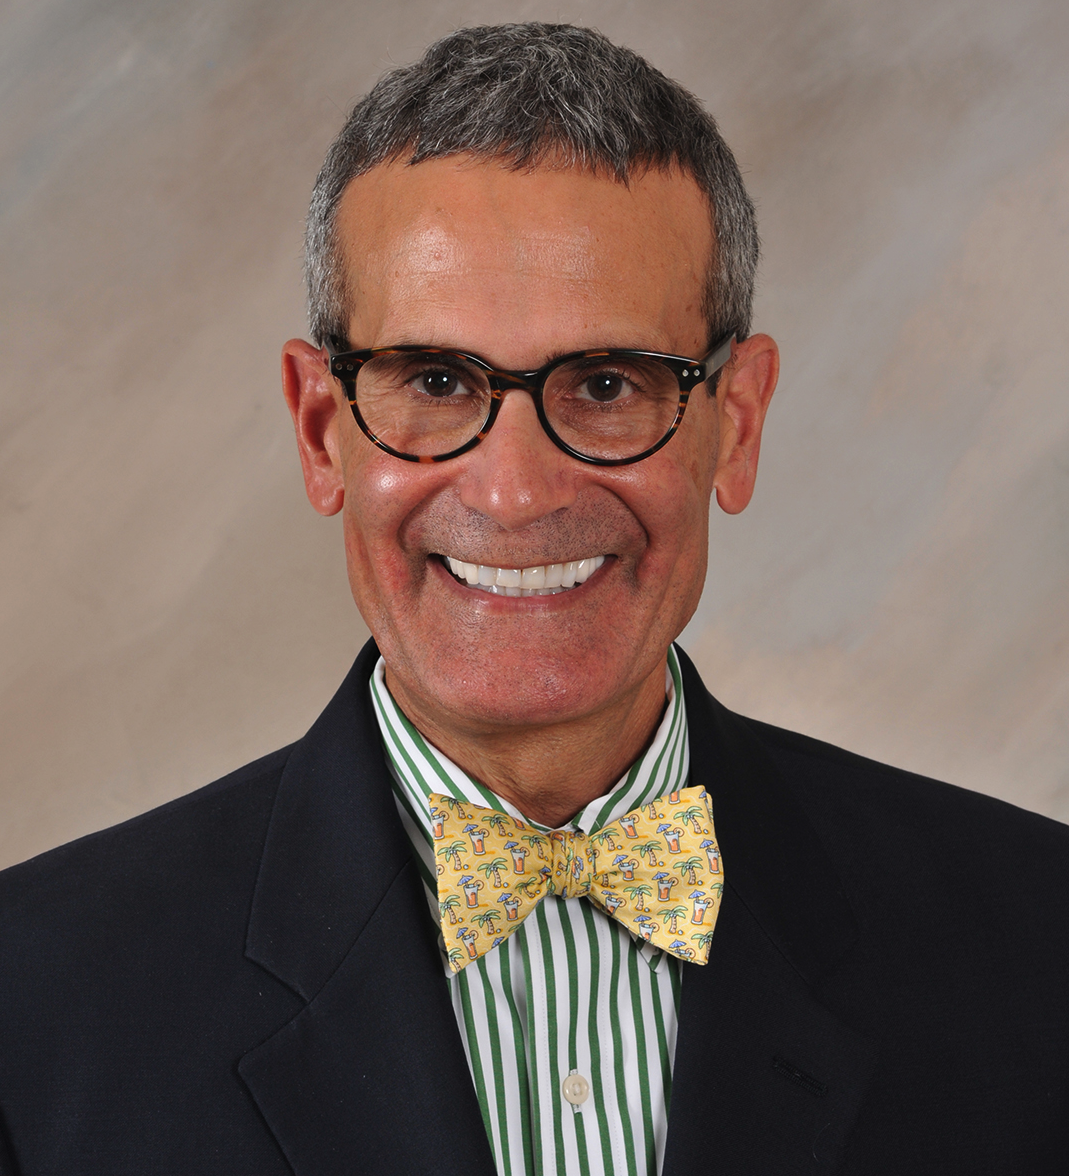 headshot of Jeffrey Fudin, PharmD, DAIPM, FCCP, FASHP